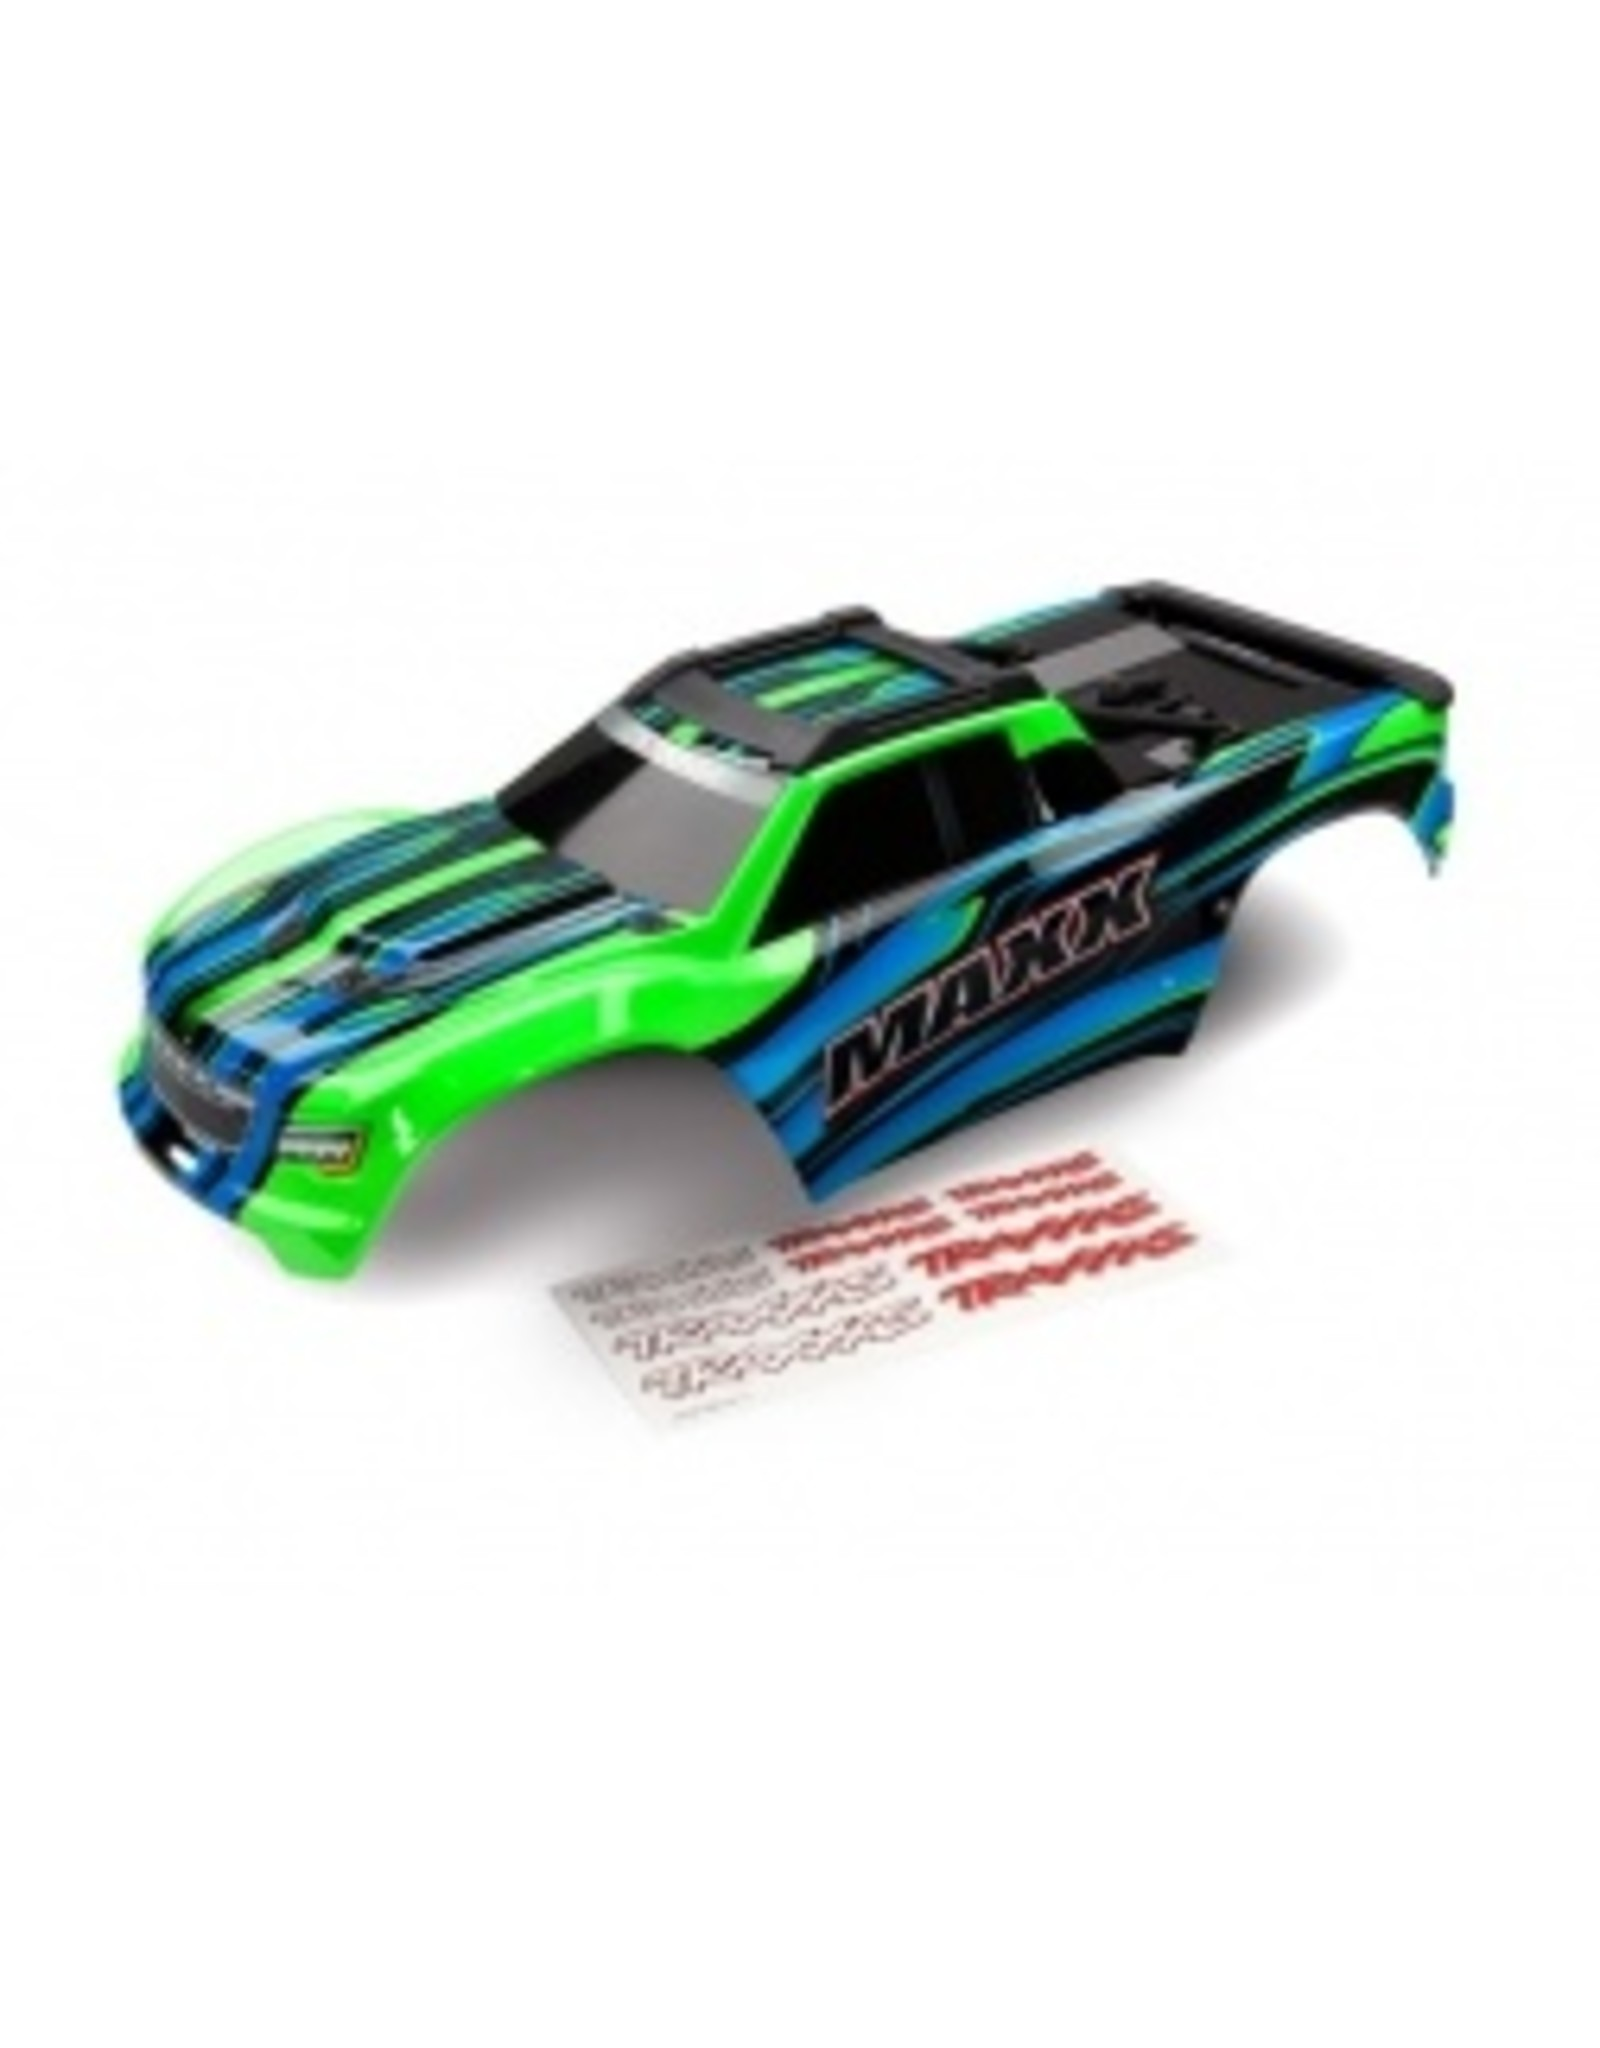 Traxxas Body, Maxx, green (painted)/ decal sheet